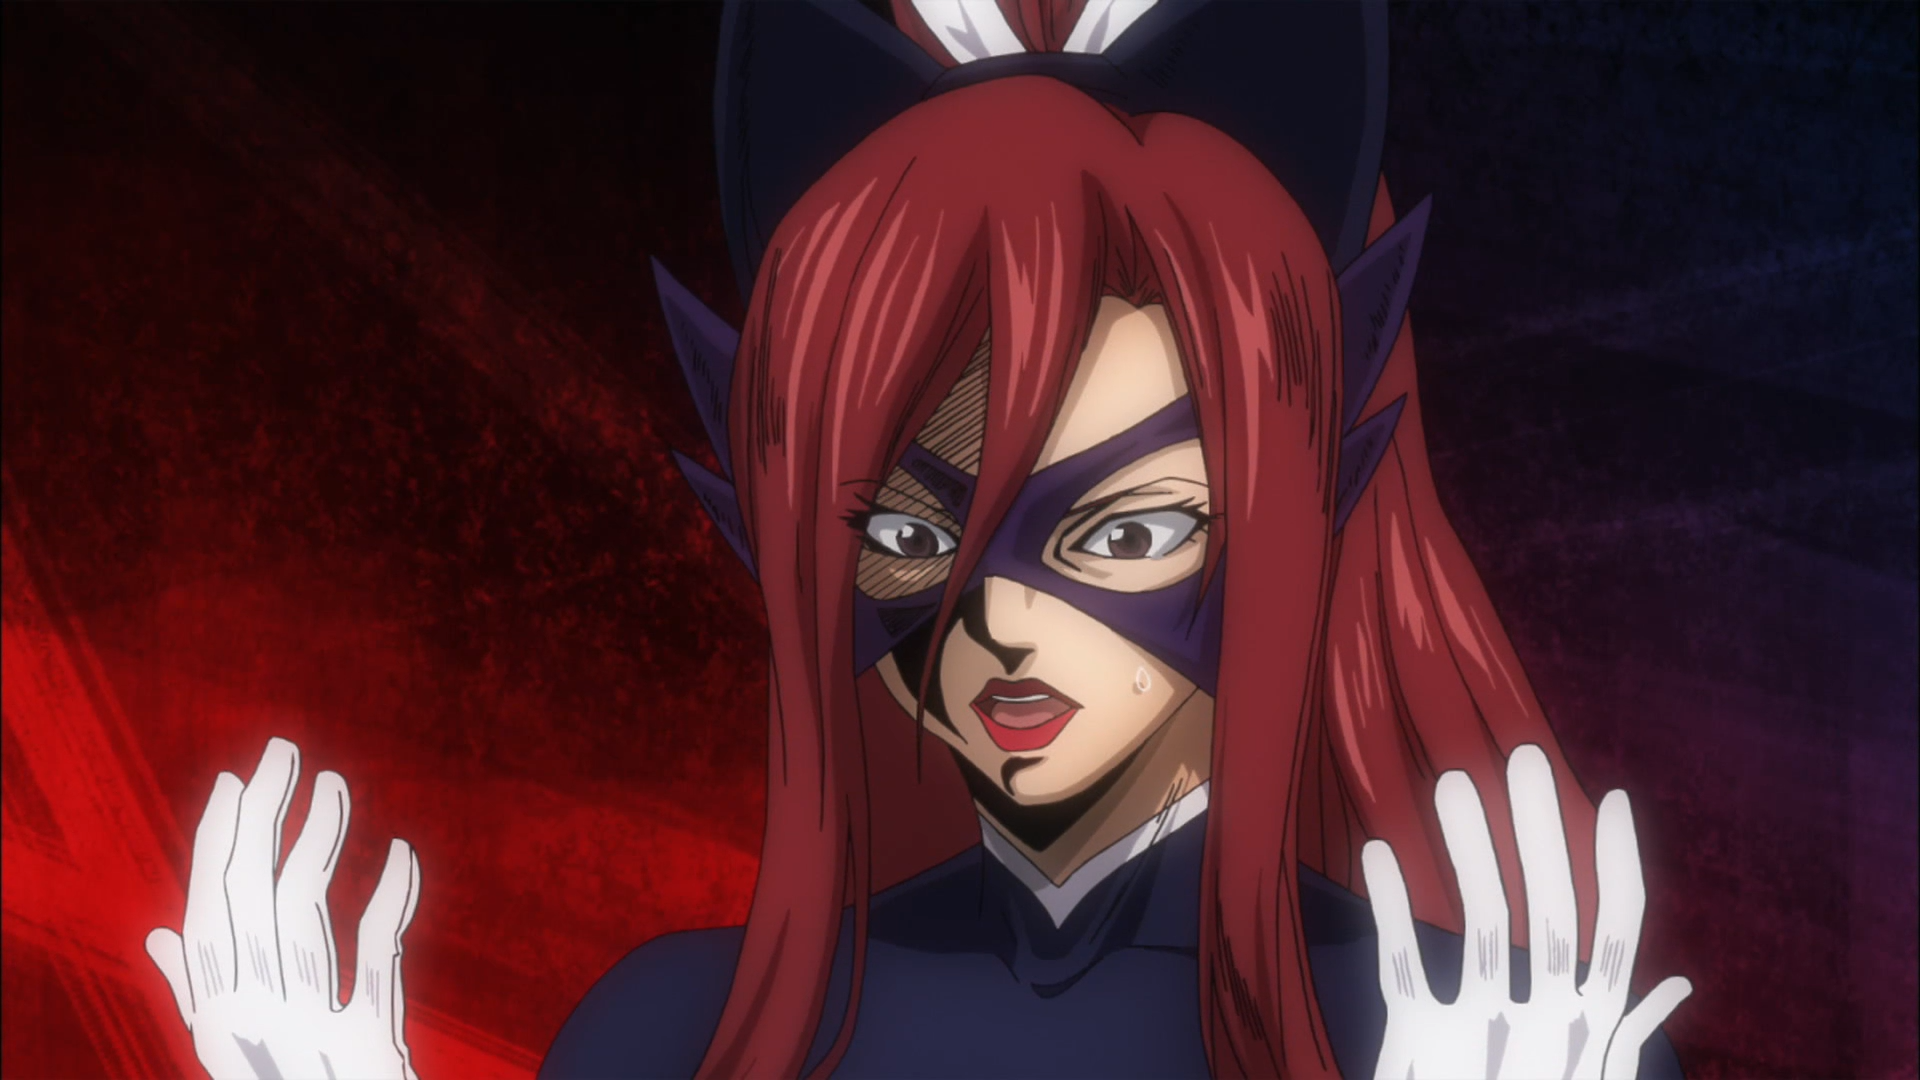 [HorribleSubs] Fairy Tail S2 - 47 [1080p]_001_31325